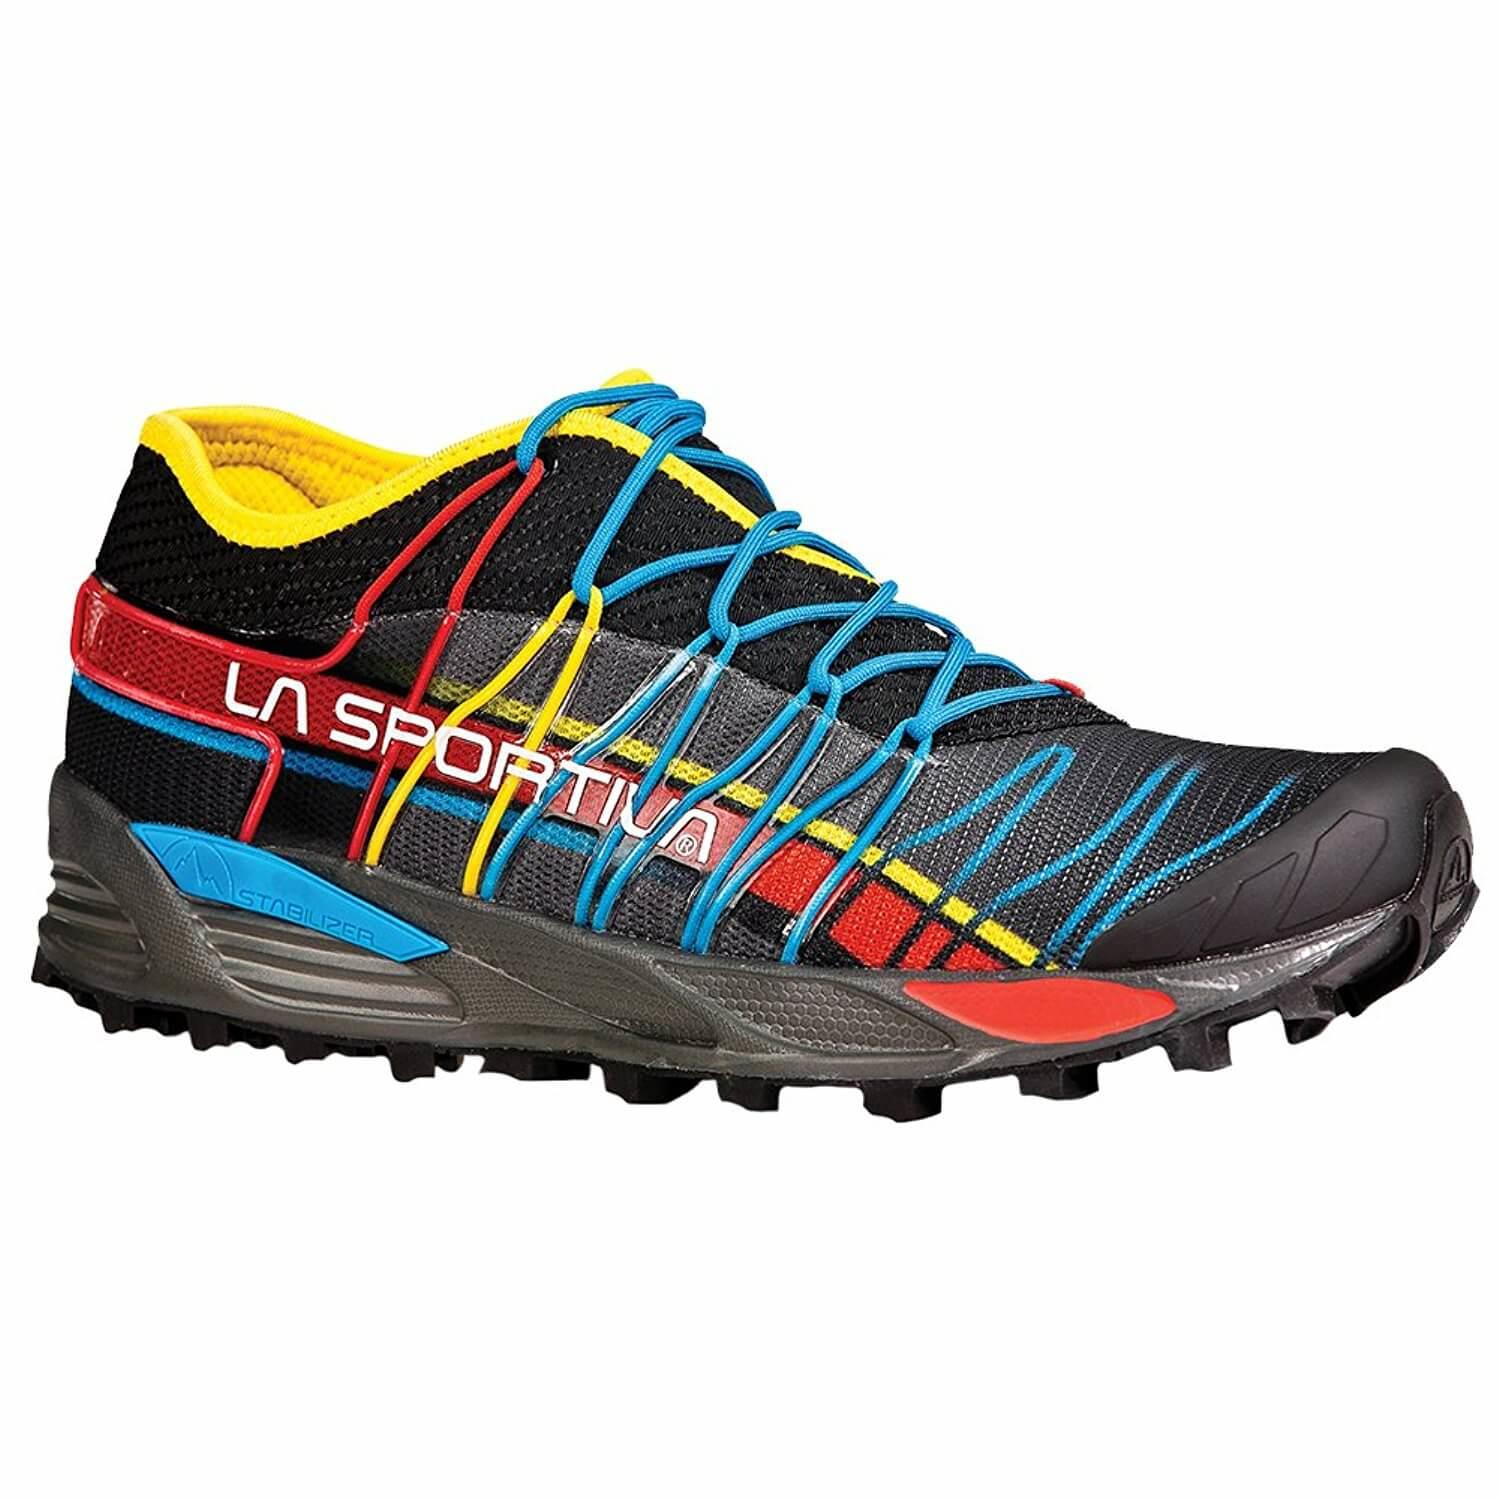 a309e9d035a Best La Sportiva Trail Running Shoes Reviewed in 2019 | RunnerClick